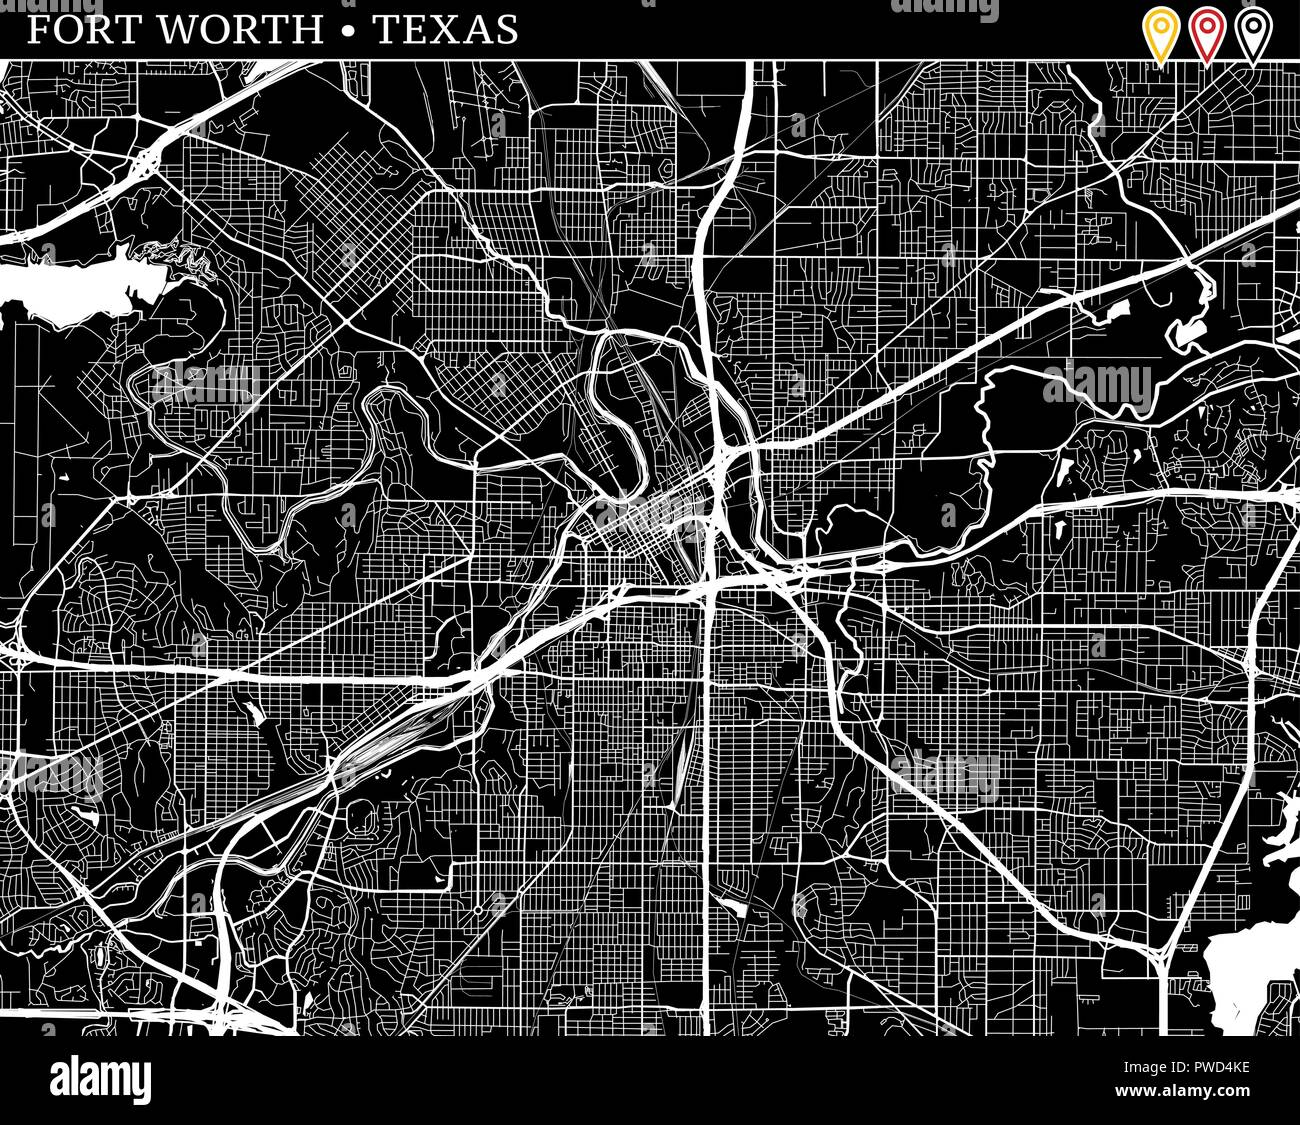 Simple map of Fort Worth, Texas, USA. Black and white version for ...